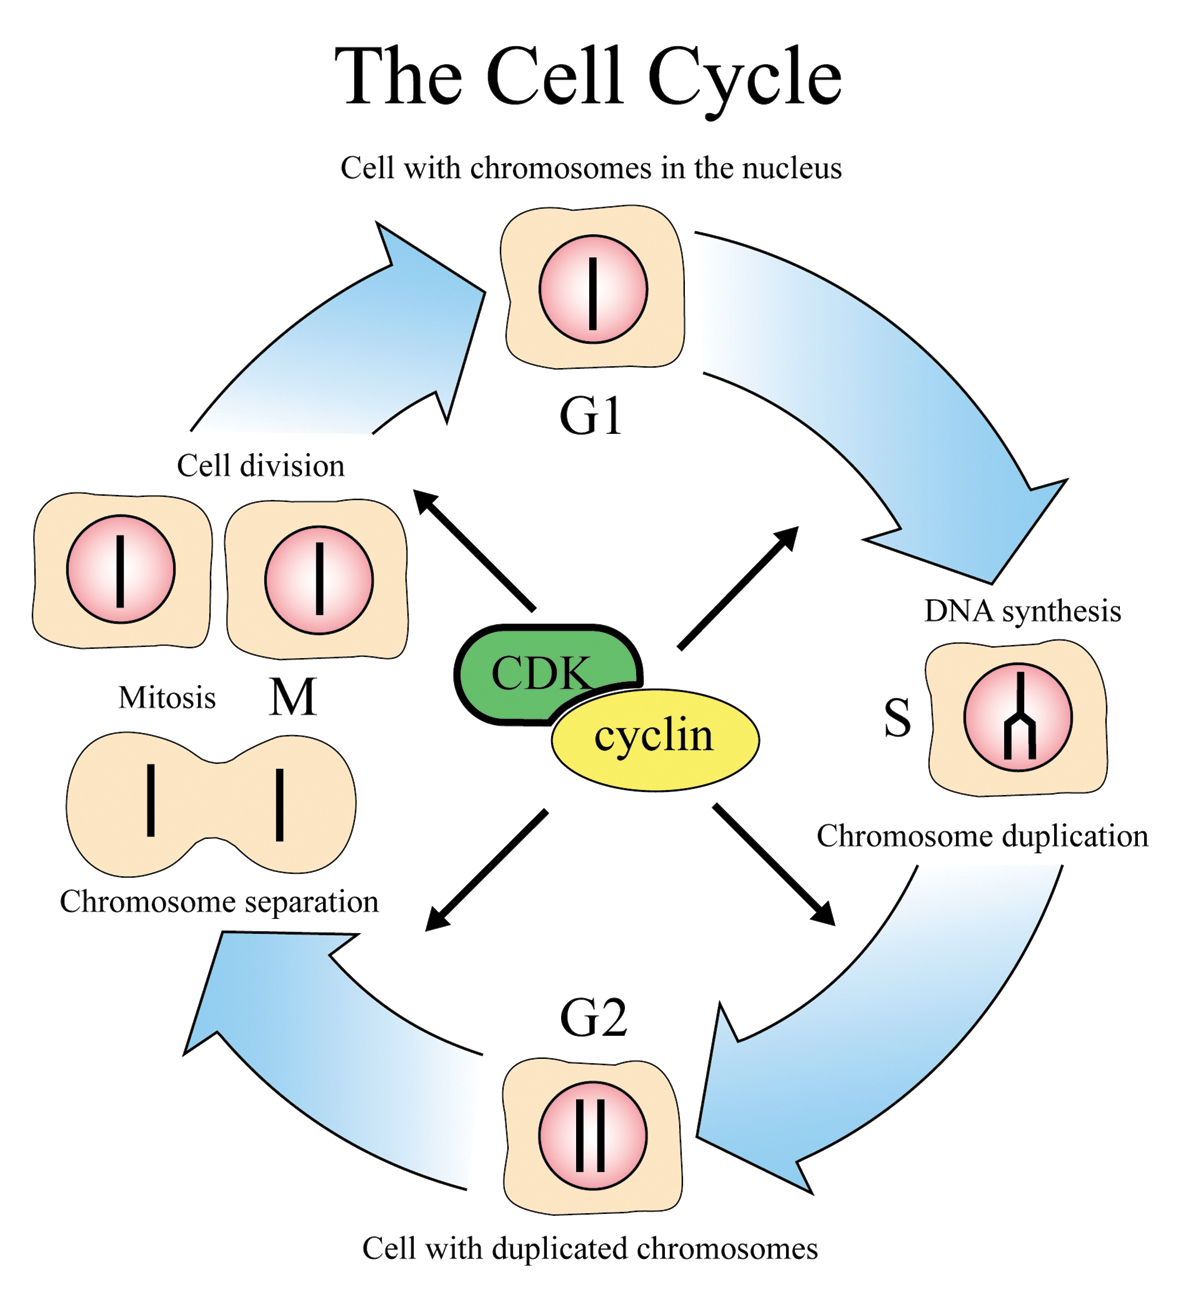 cell cycle, english version